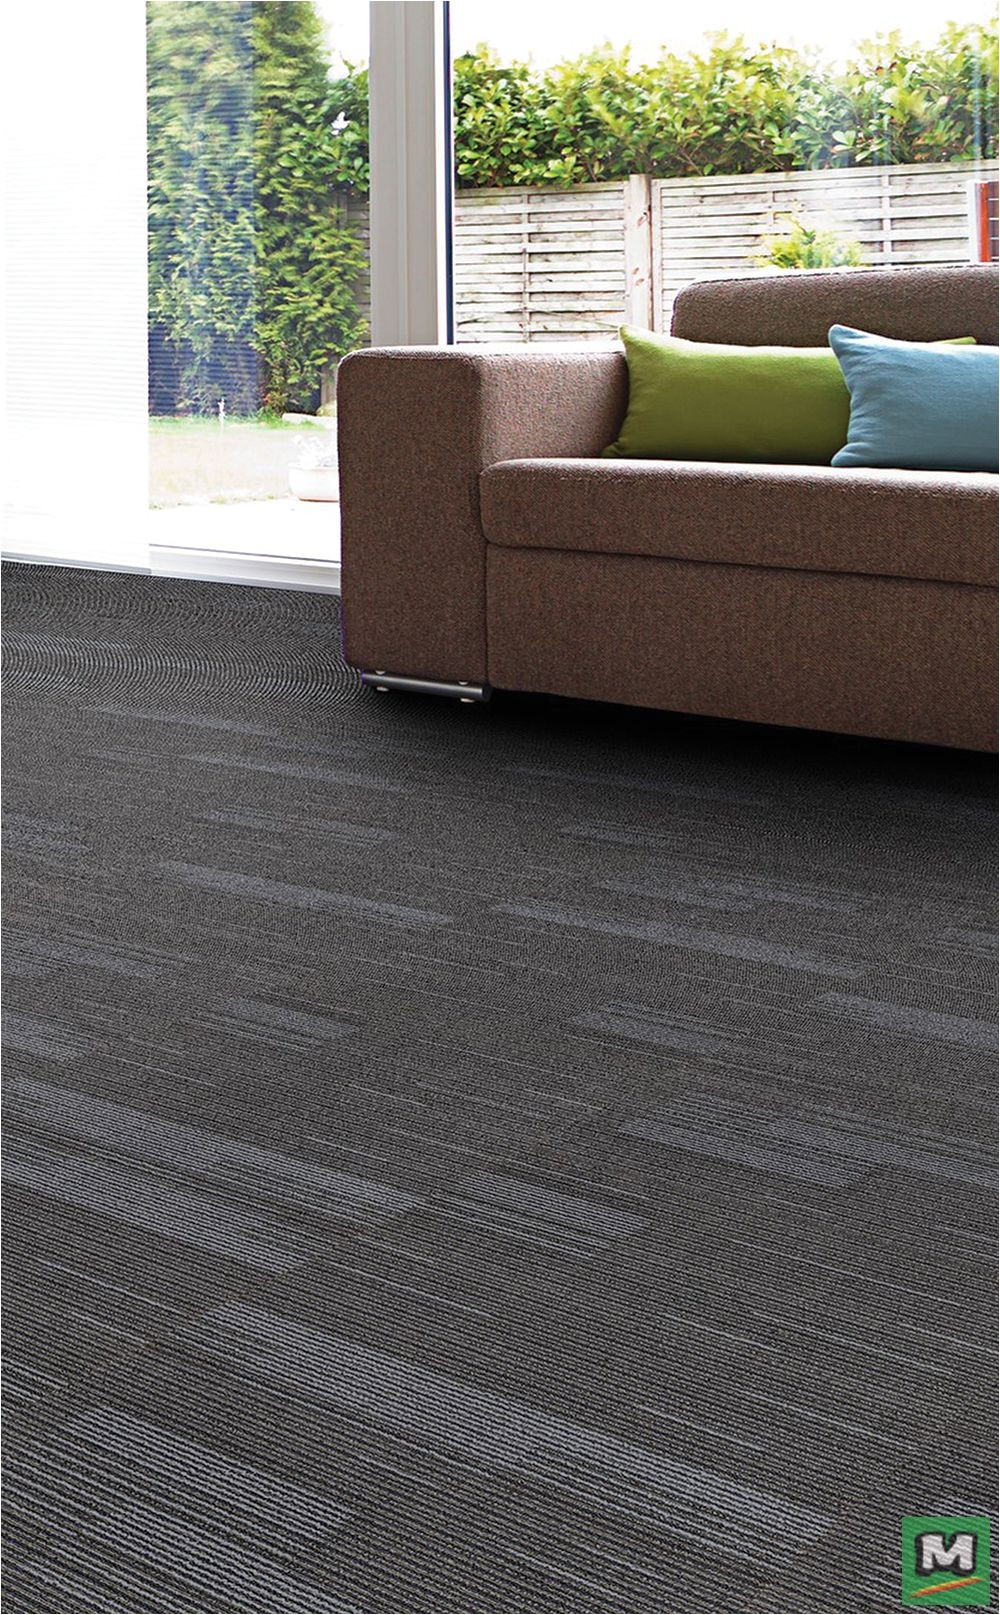 menards hardwood flooring of rubber flooring tiles menards transform the look of an entire room within rubber flooring tiles menards transform the look of an entire room with u tilea loft modular